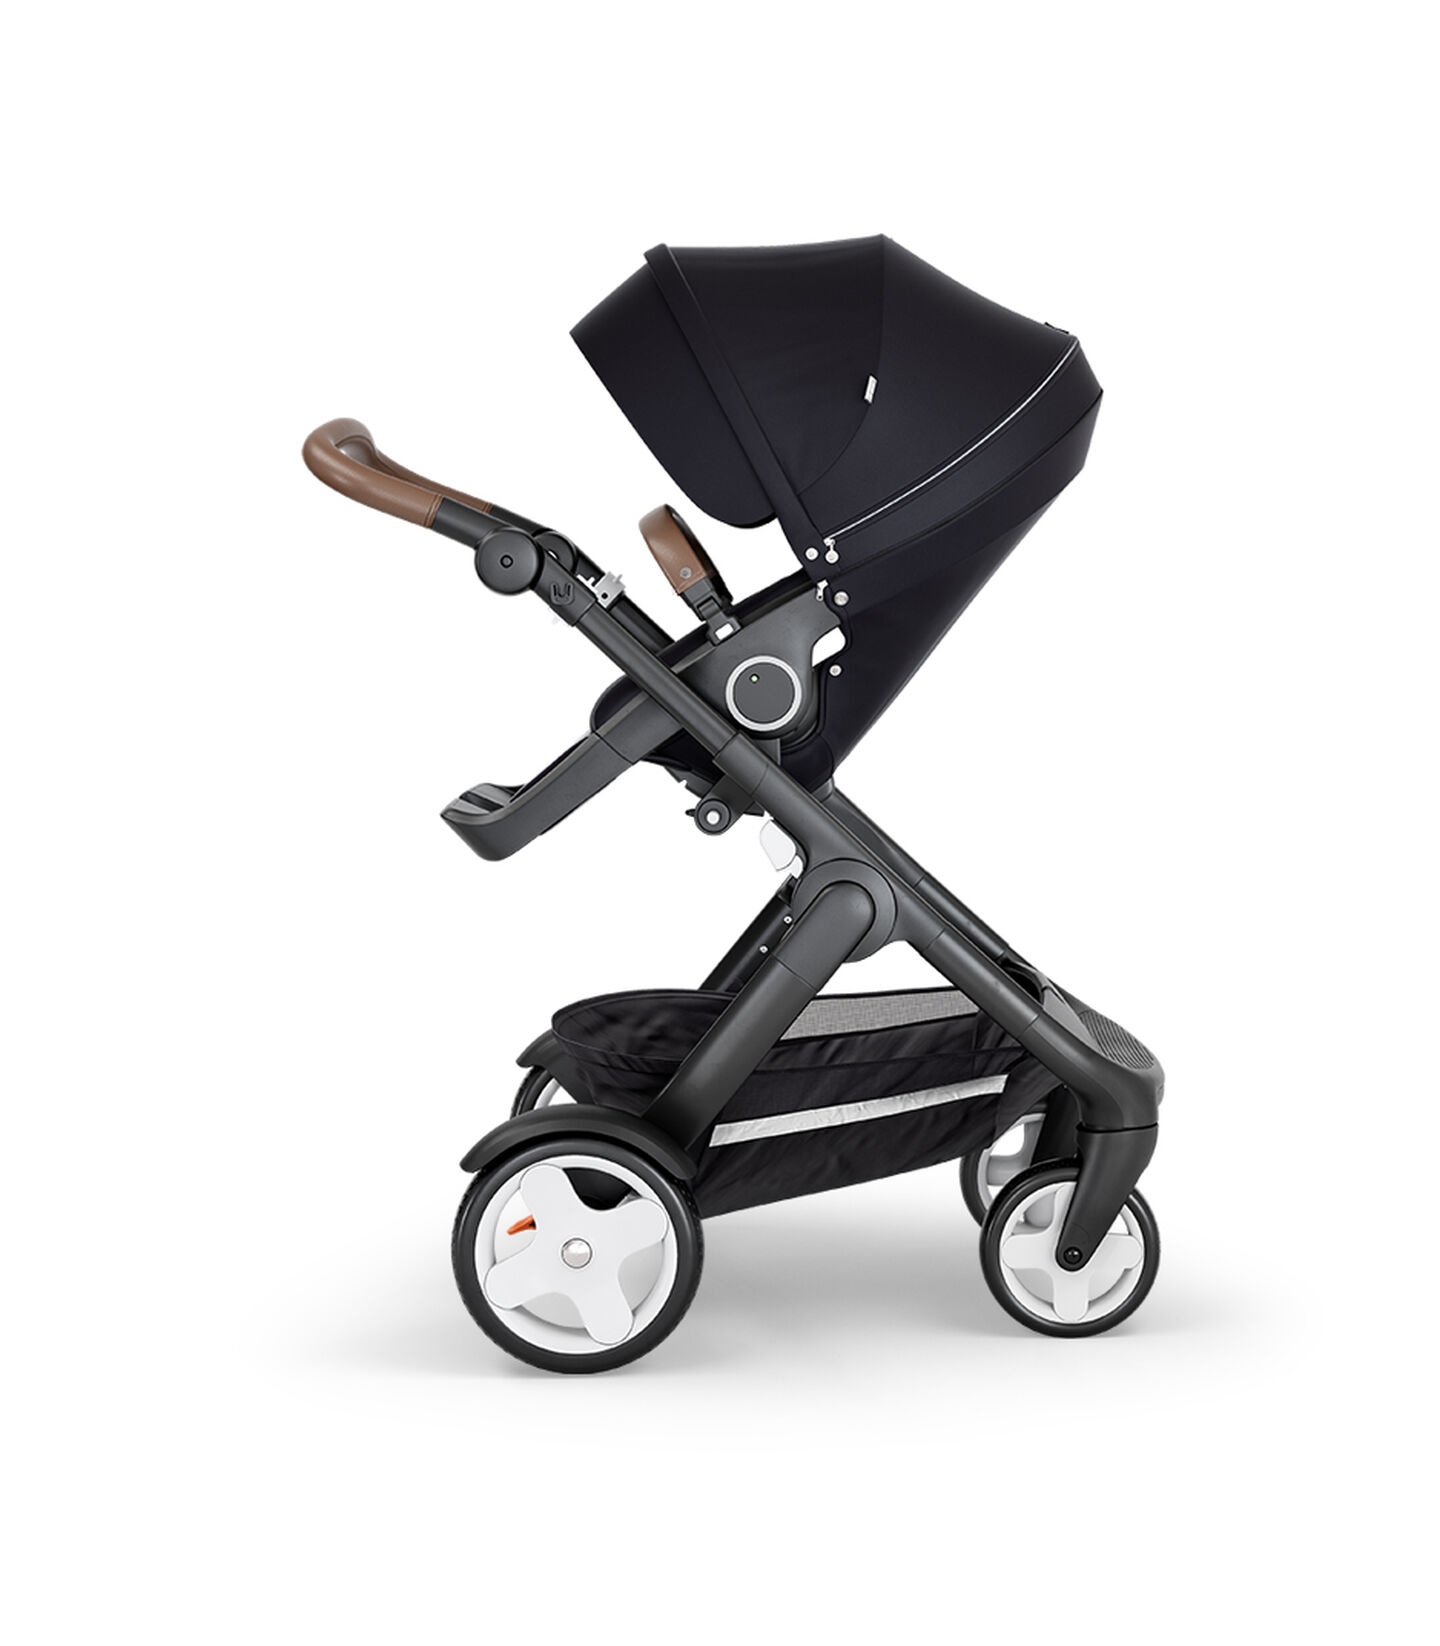 Stokke® Trailz™ with Black Chassis, Brown Leatherette and Classic Wheels. Stokke® Stroller Seat, Black.